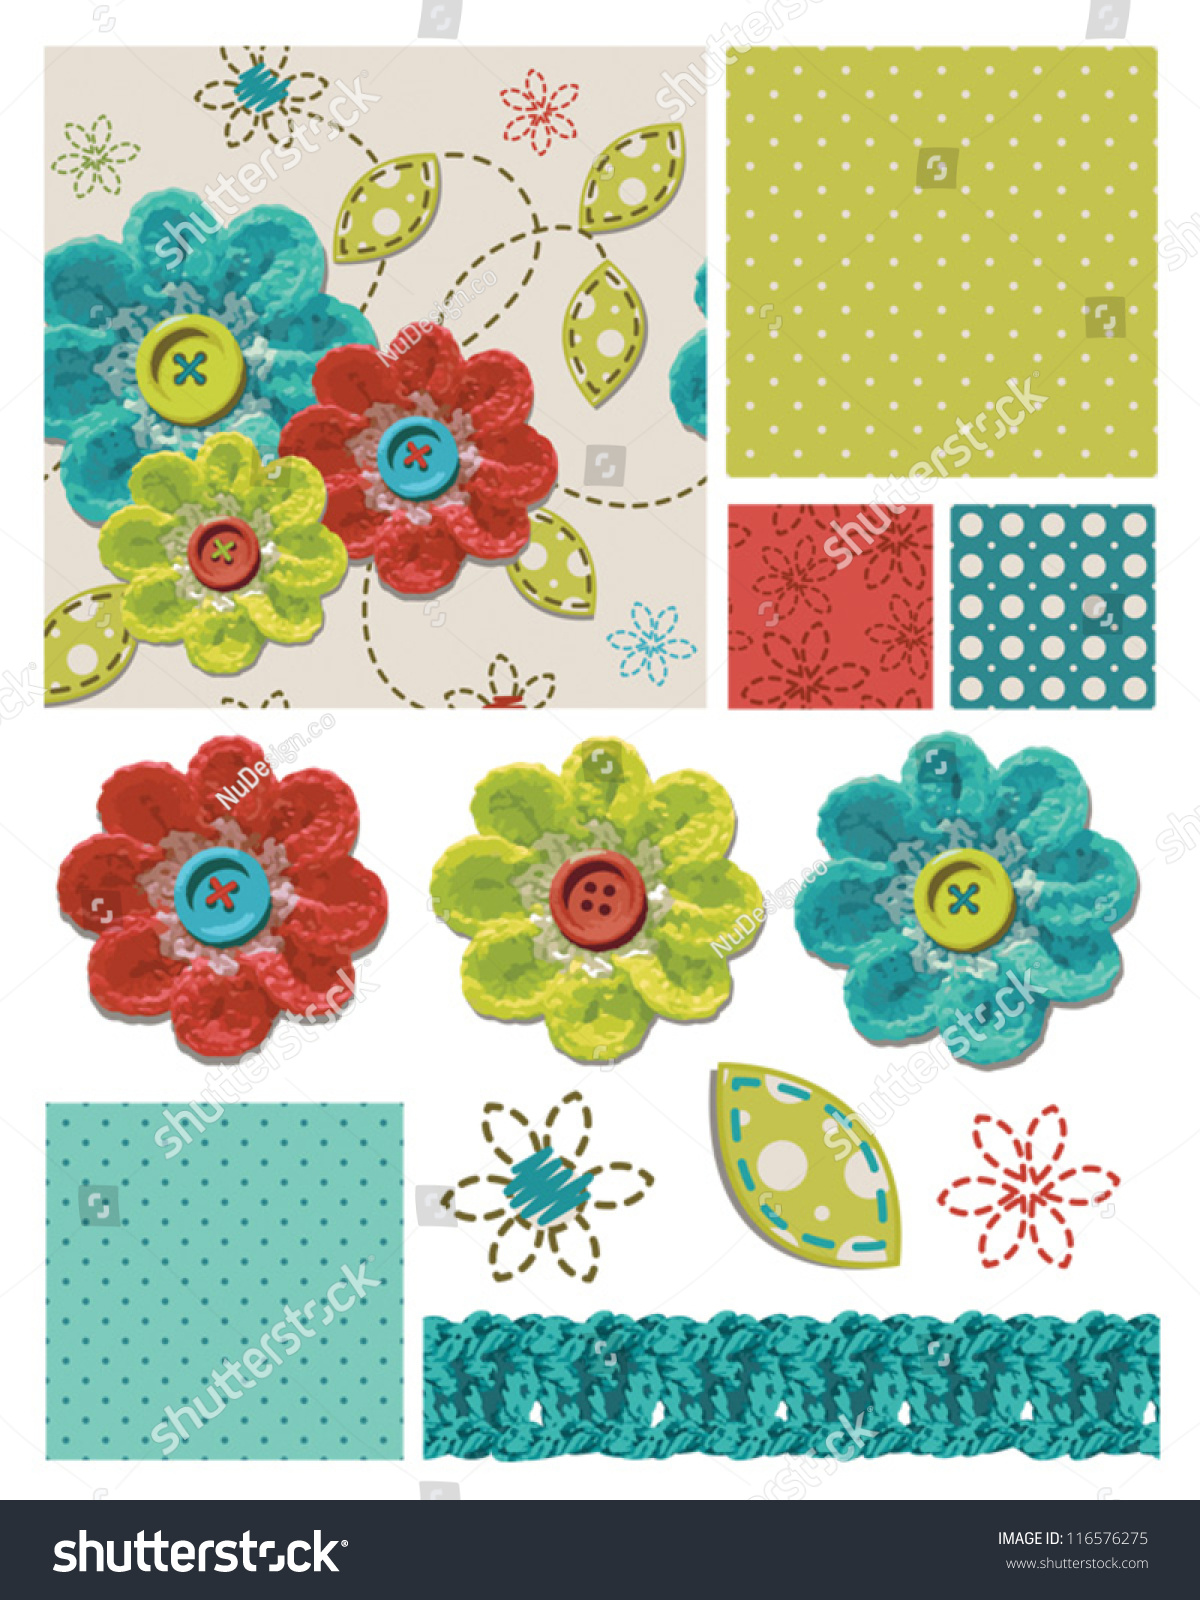 Crochet Stitches Vector : Crochet Flower Seamless Patterns And Elements. Stock Vector ...